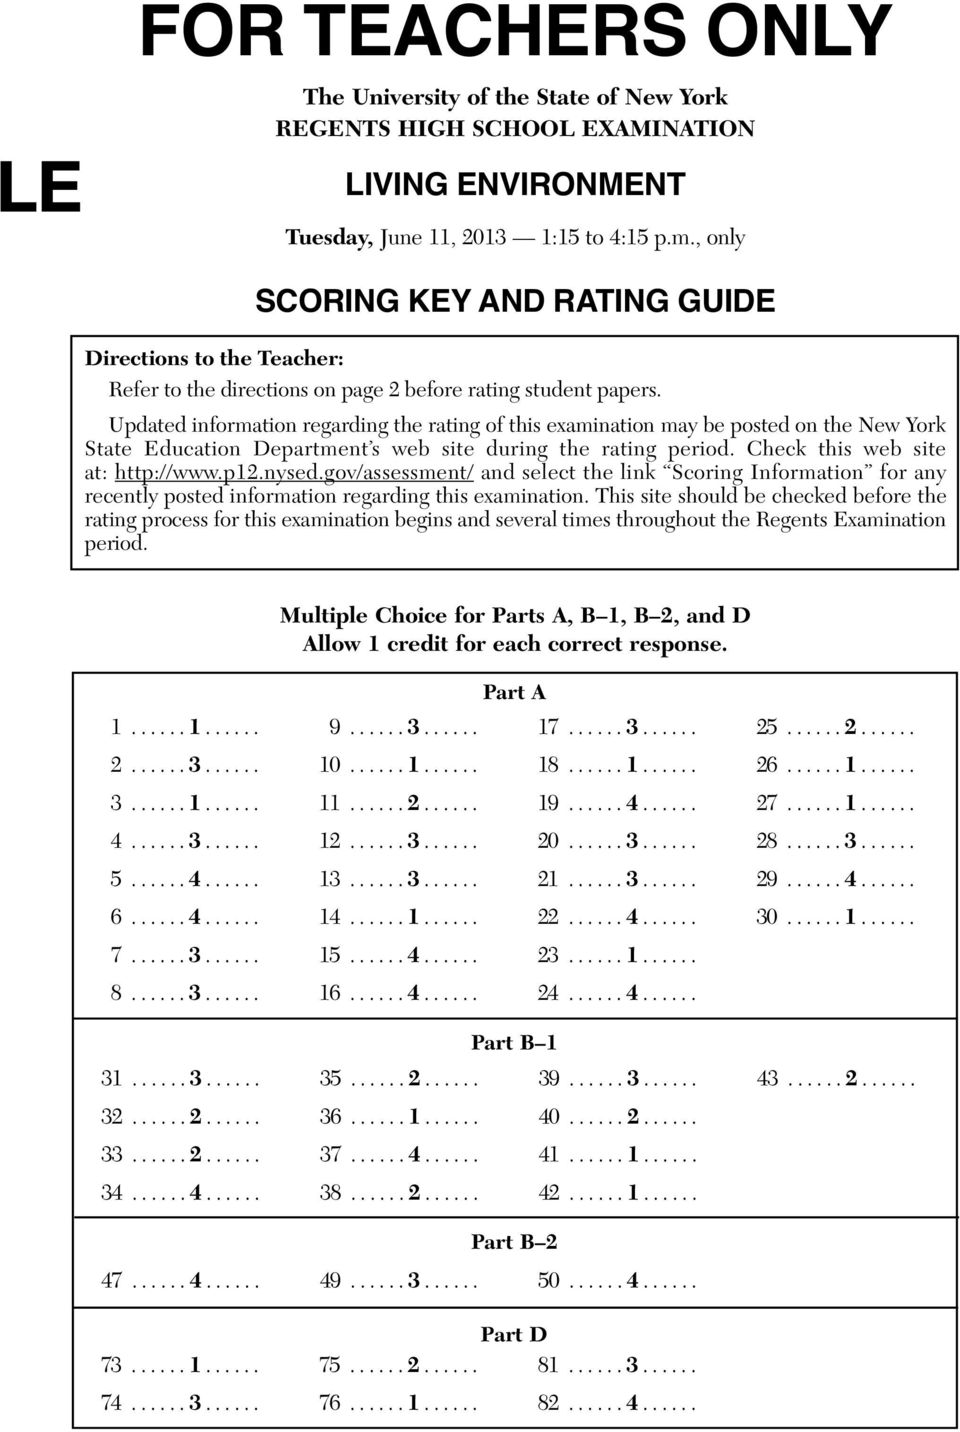 Updated information regarding the rating of this examination may be posted on the New York State Education Department s web site during the rating period. Check this web site at: http://www.p12.nysed.